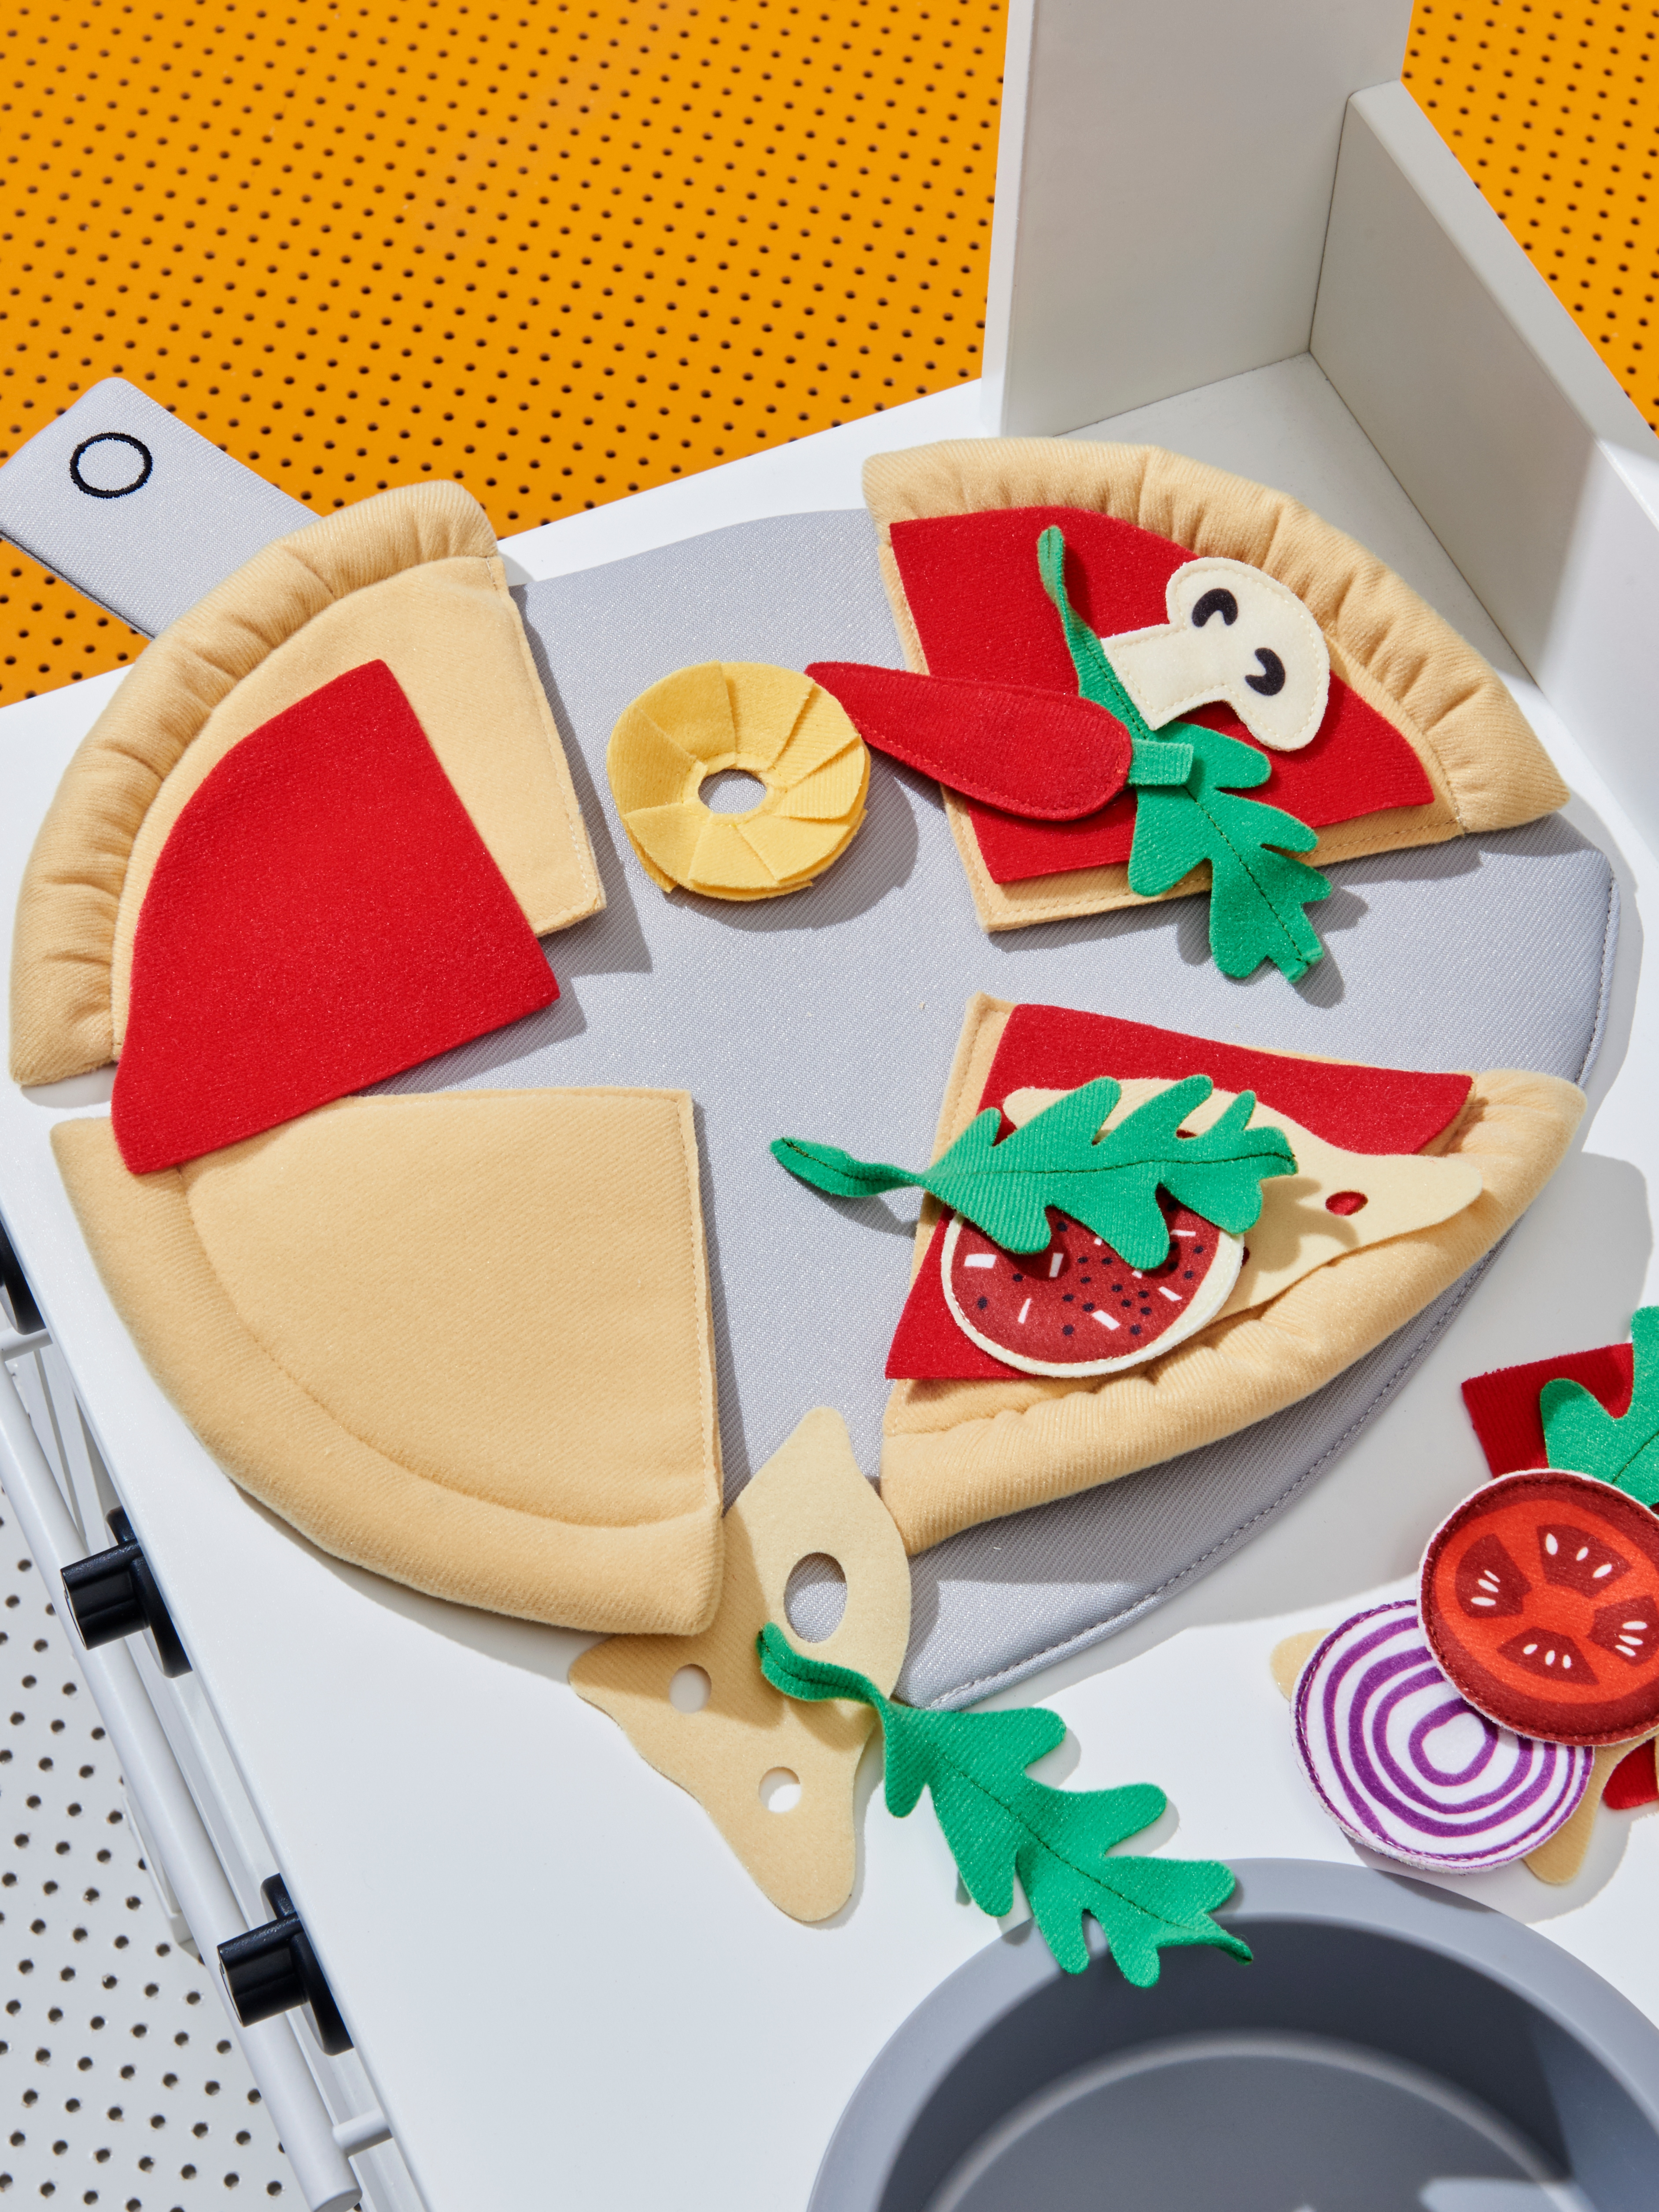 Close-up of soft fabric DUKTIG pizza toy with multi-coloured toppings on a white children's toy oven.